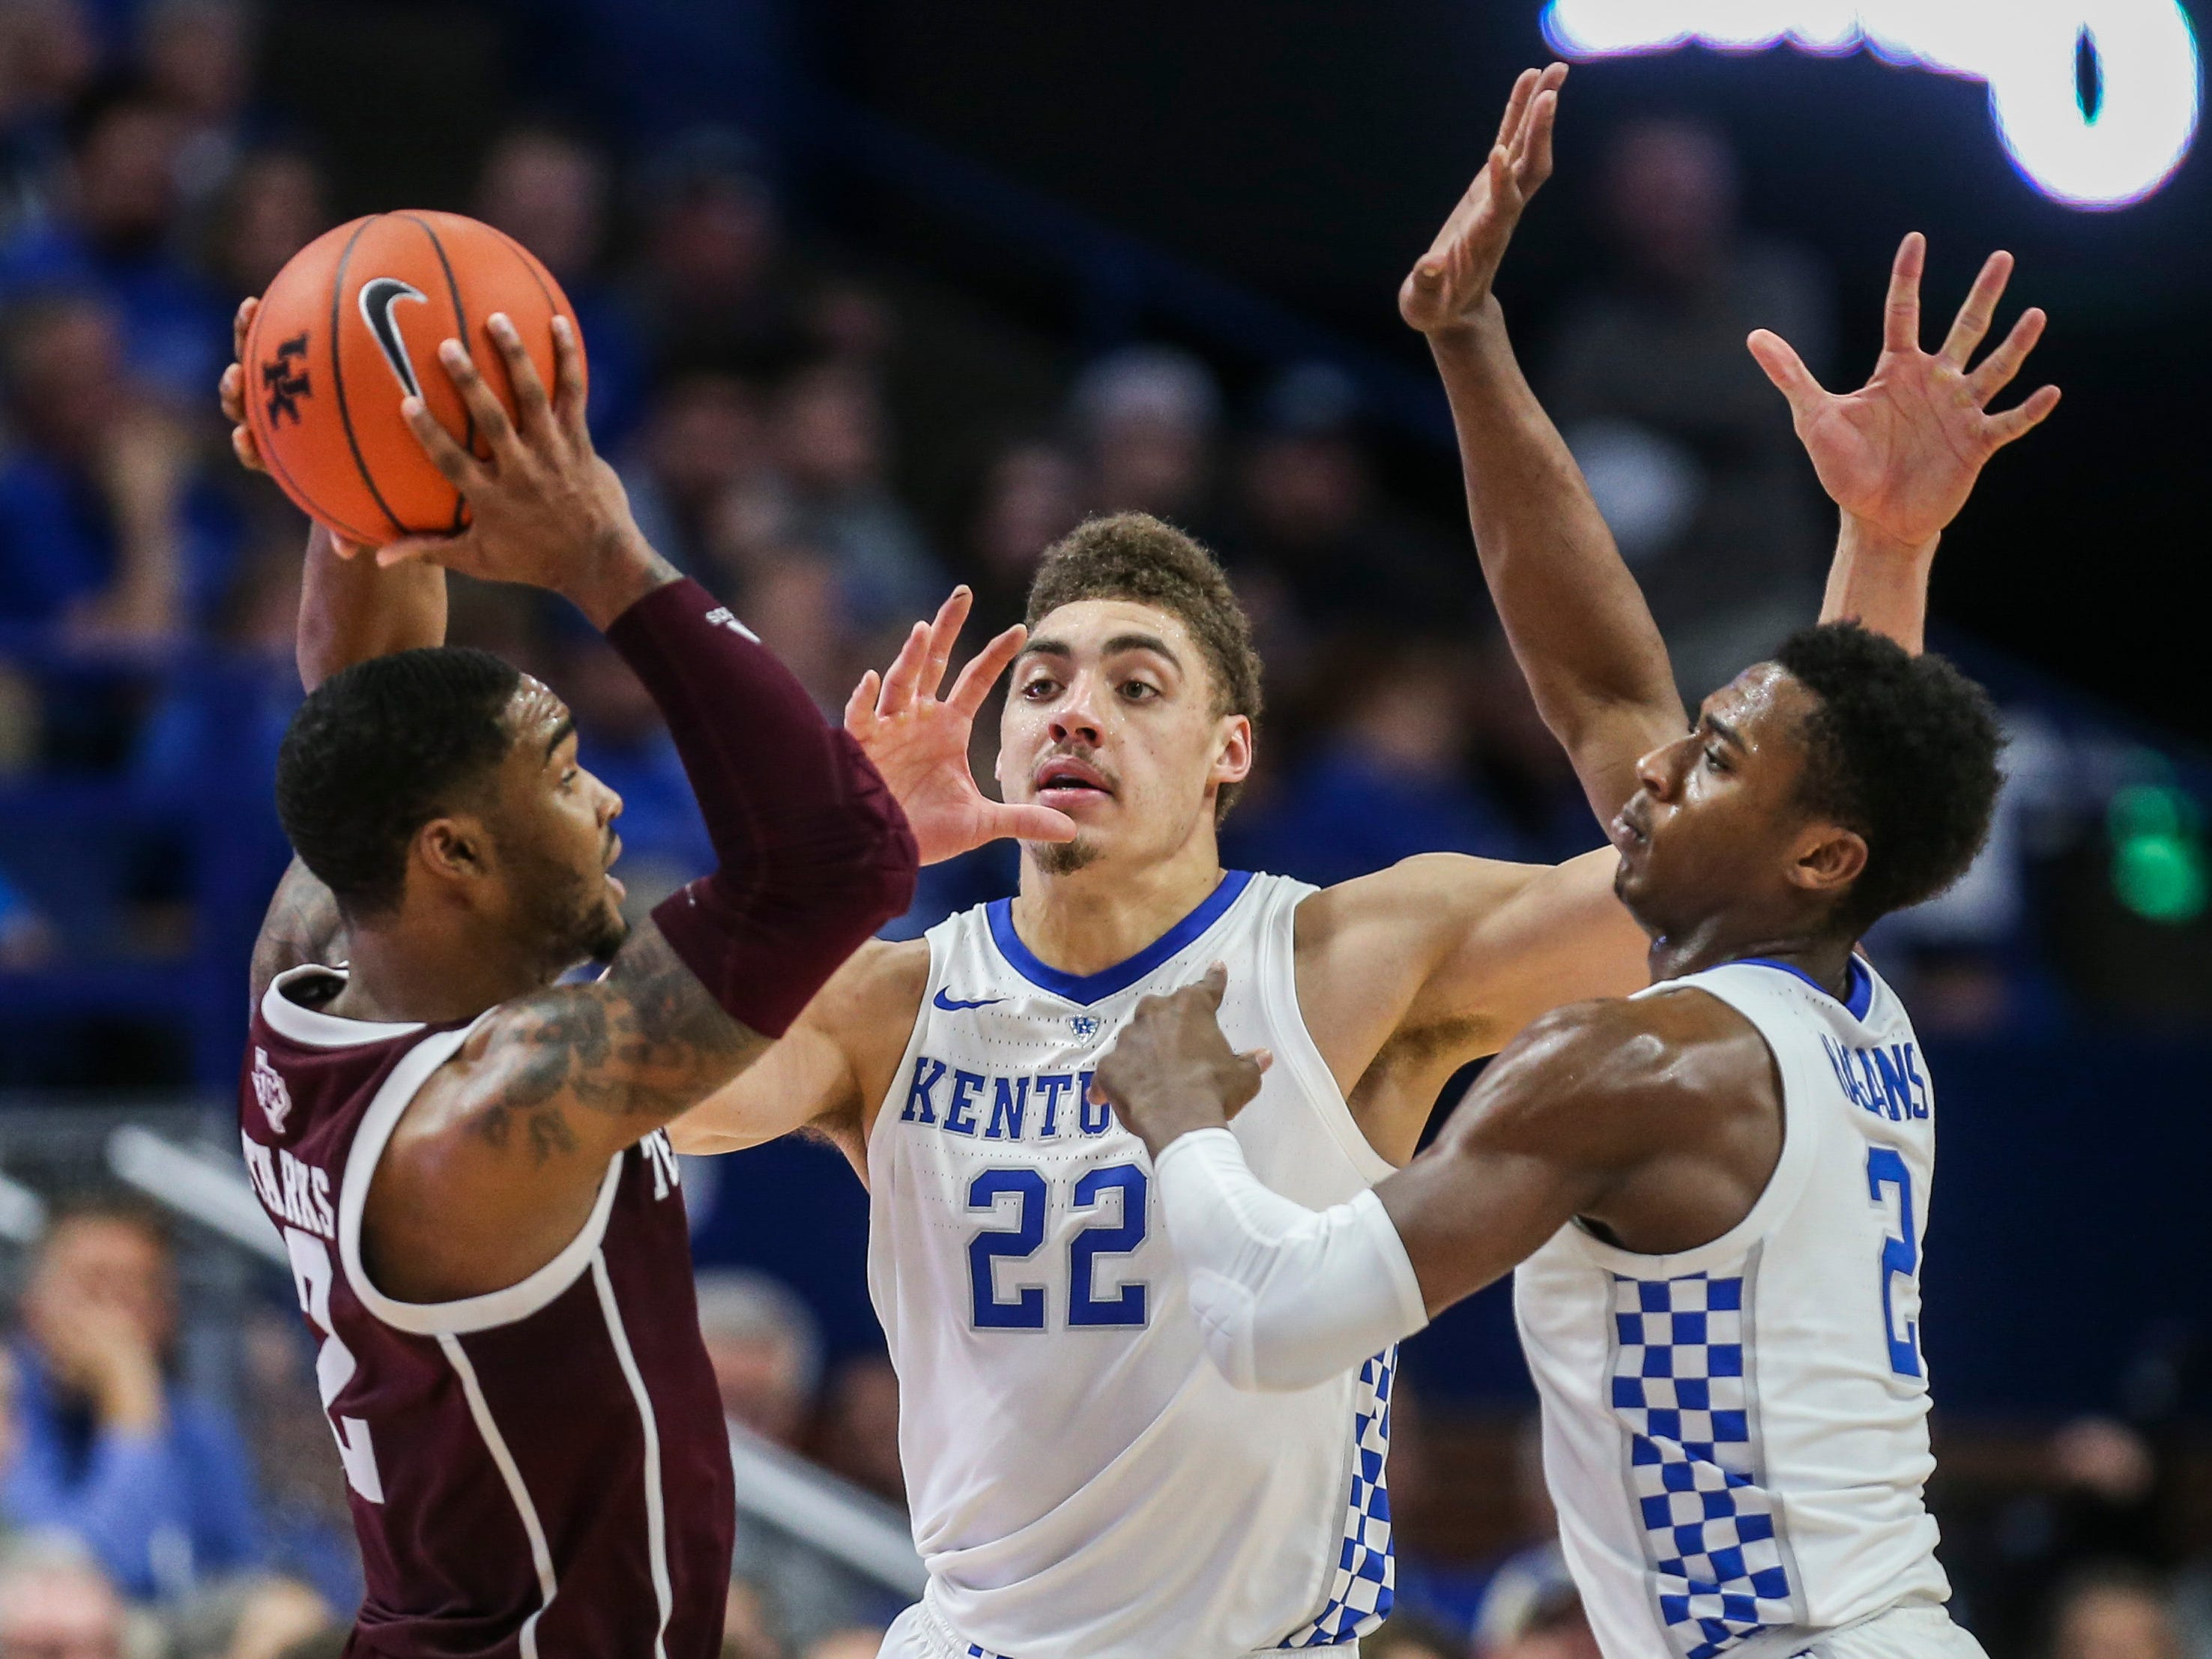 Kentucky's Ashton Hagans and Reid Travis double team Texas A&M's TJ Starks in the Cats' 85-74 win Jan. 8, 2019 at Rupp Arena.